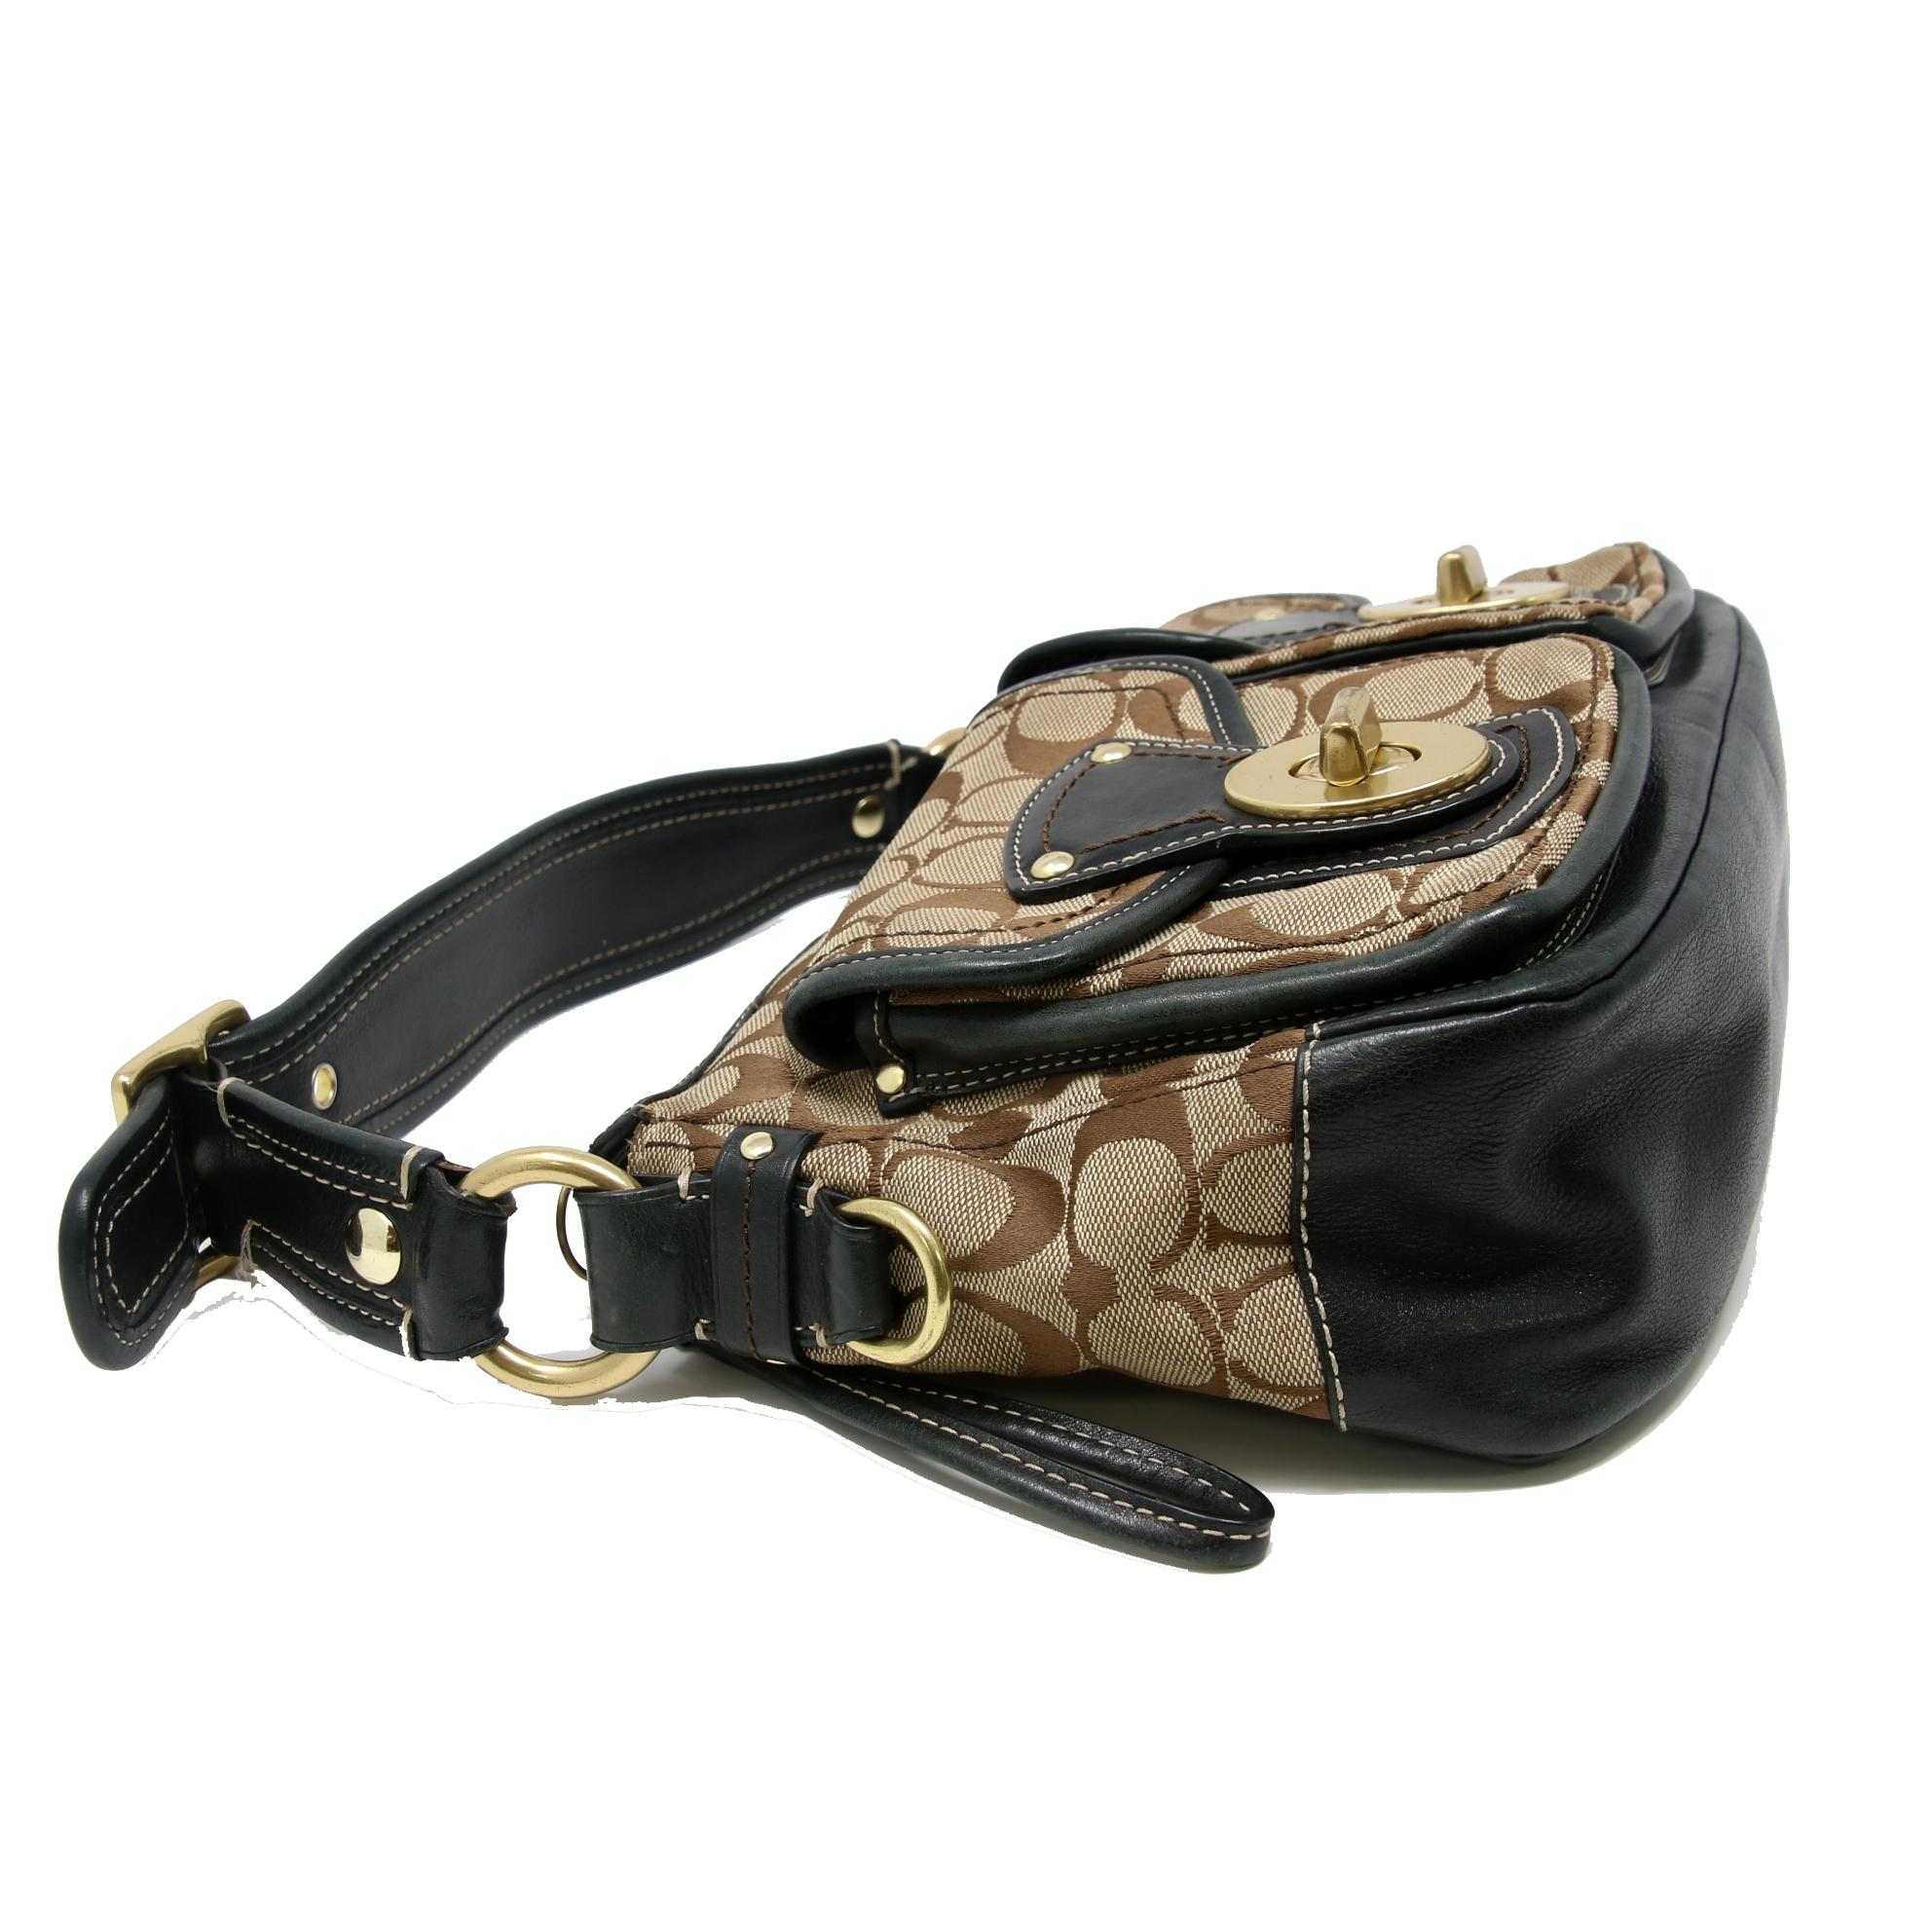 Free shipping and great prices for shoes, boots, sandals, handbags and other accessories at cripatsur.ga!